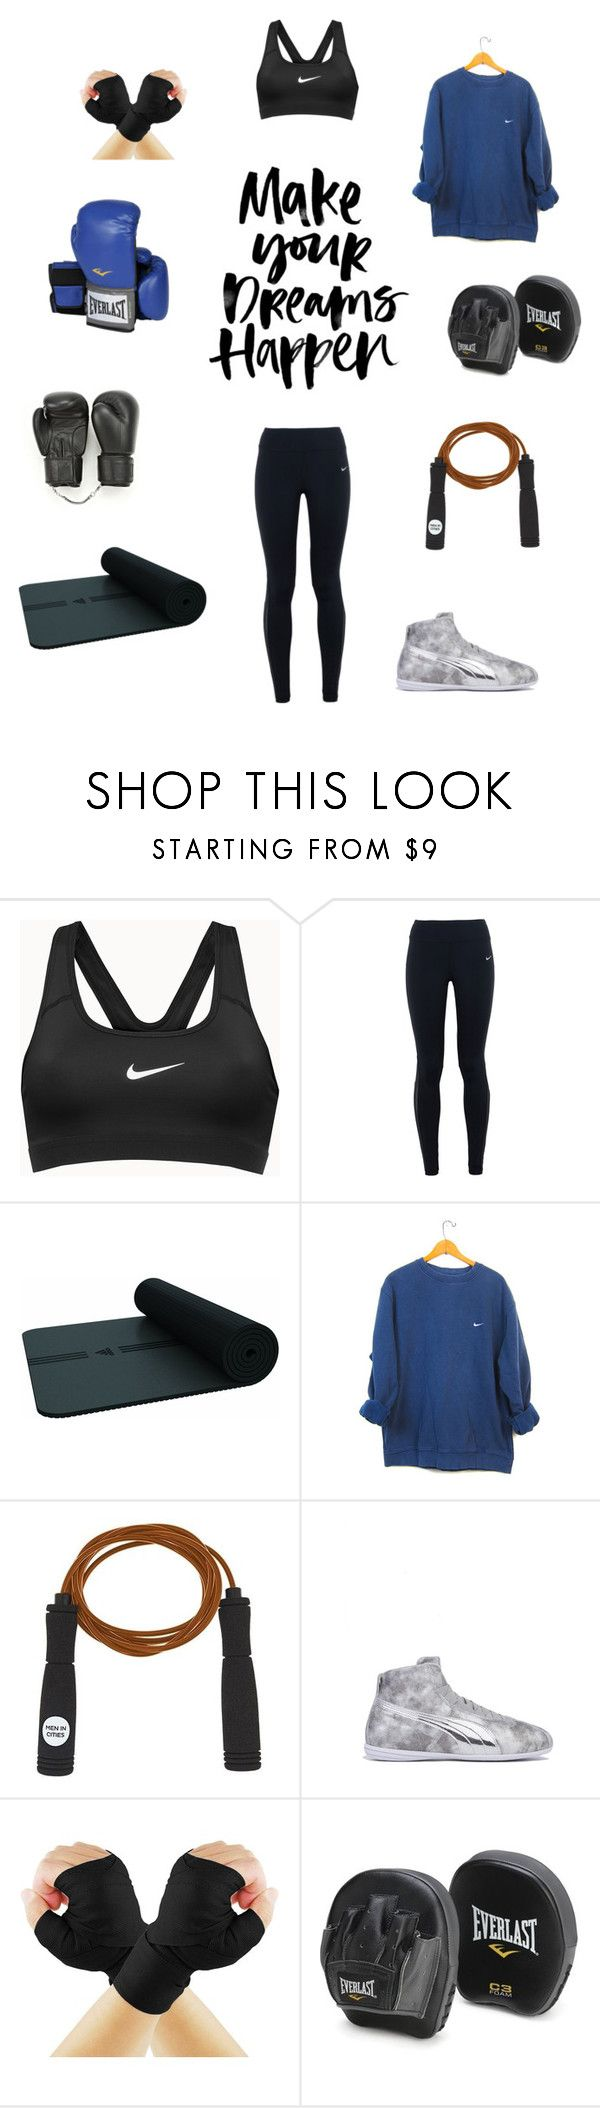 """Get Boxing with Gigi Hadid"" by voyageashpole ❤ liked on Polyvore featuring NIKE, adidas, Men in Cities, Puma, Everlast, women's clothing, women's fashion, women, female and woman"